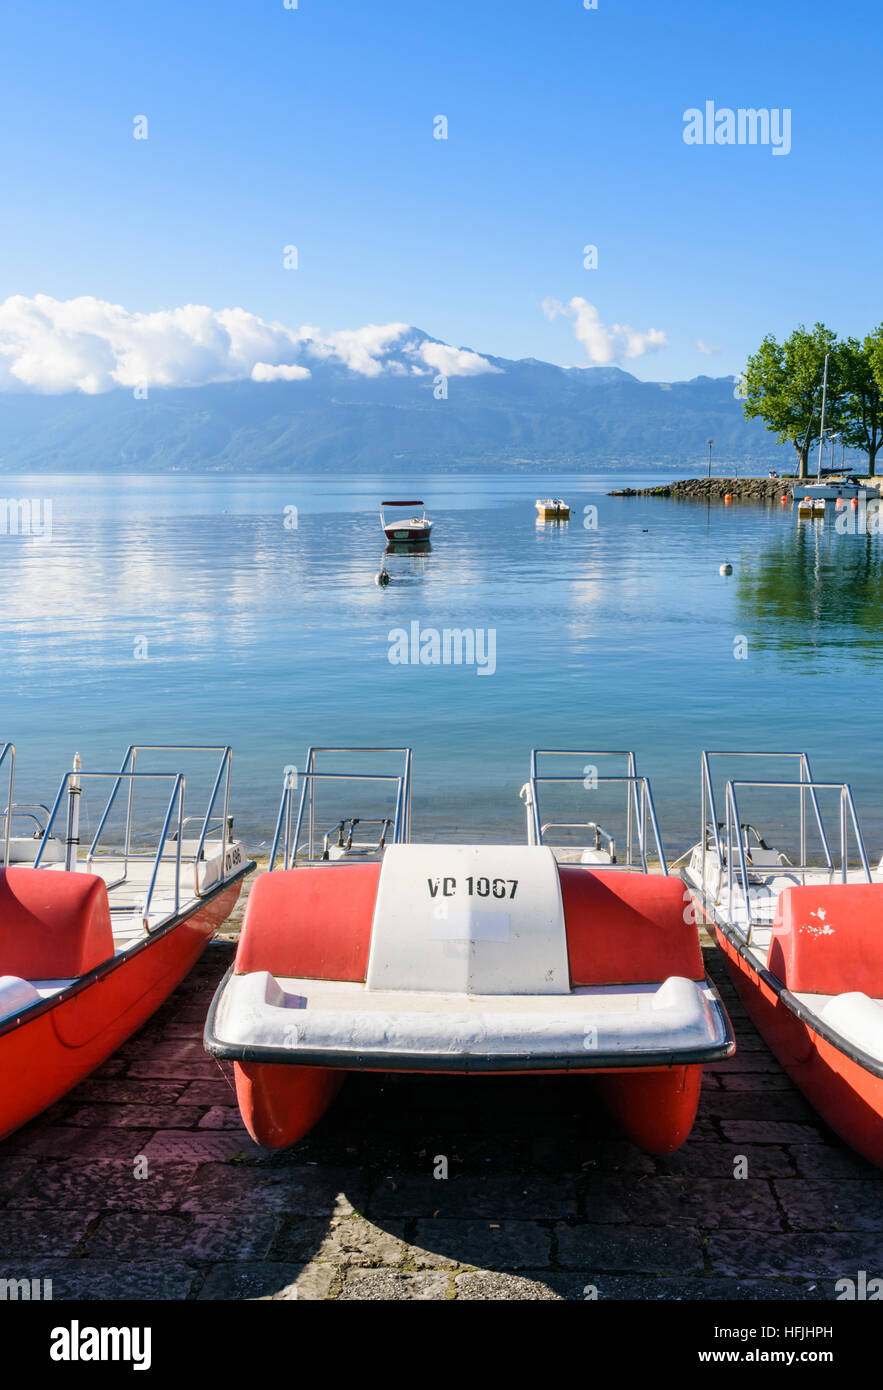 Hire pedal boats on the shore of Lac Leman, Ouchy, Lausanne, Vaud, Switzerland - Stock Image